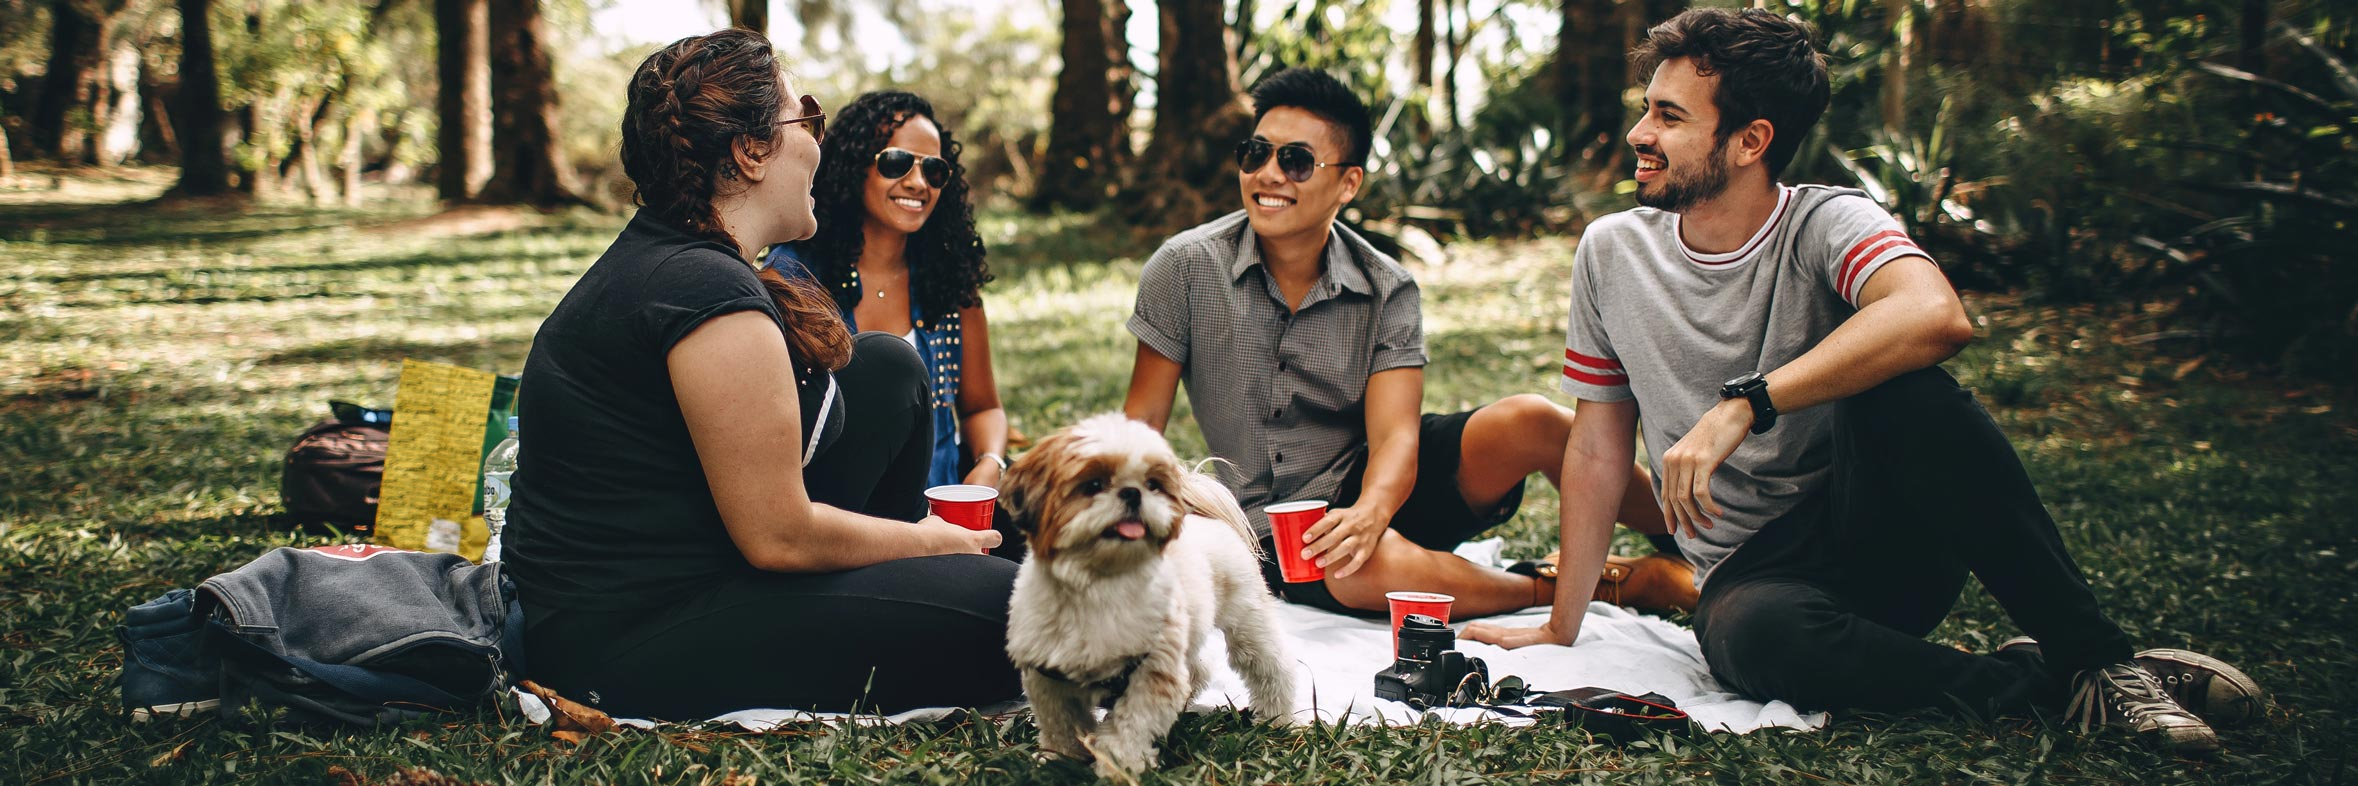 Friends picnicking in the park with their small dog.